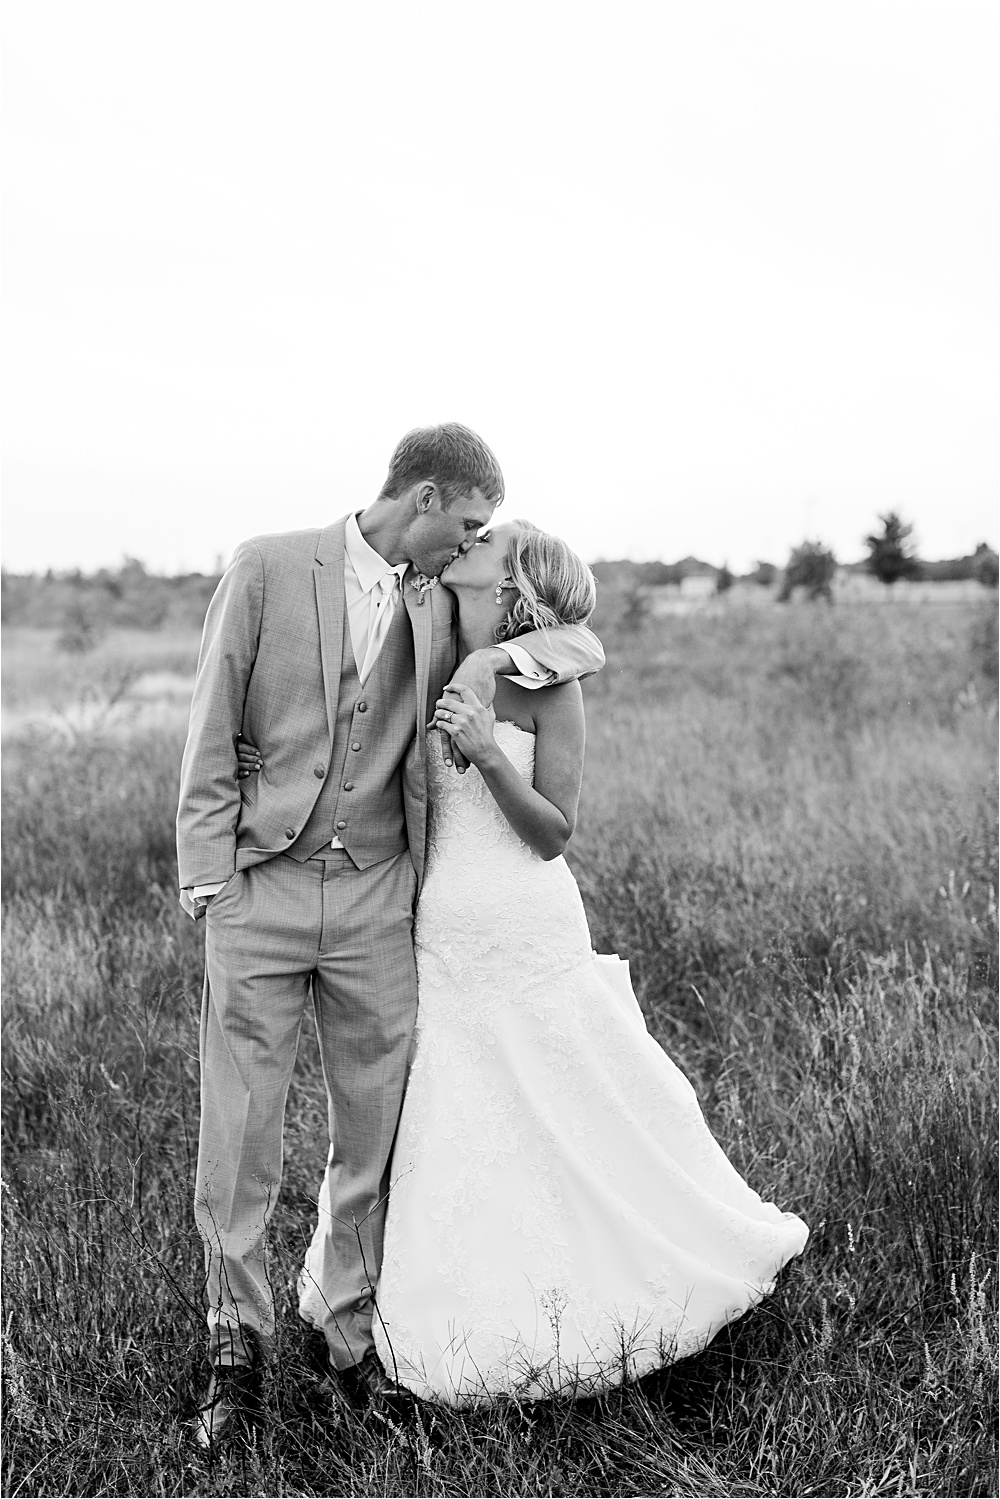 Bride and groom sunset portrait outside in field at Minnesota summer wedding in Buffalo MN photographed by Mallory Kiesow, Minnesota wedding photographer